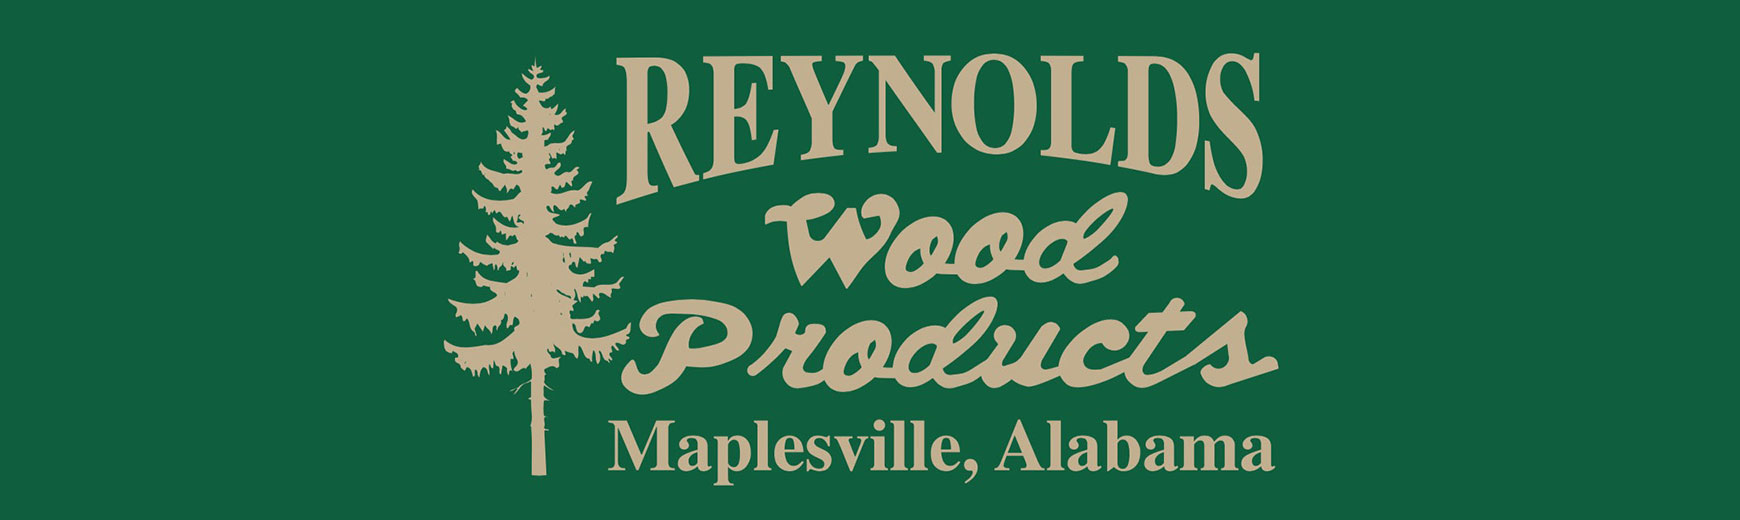 Reynolds Wood Products